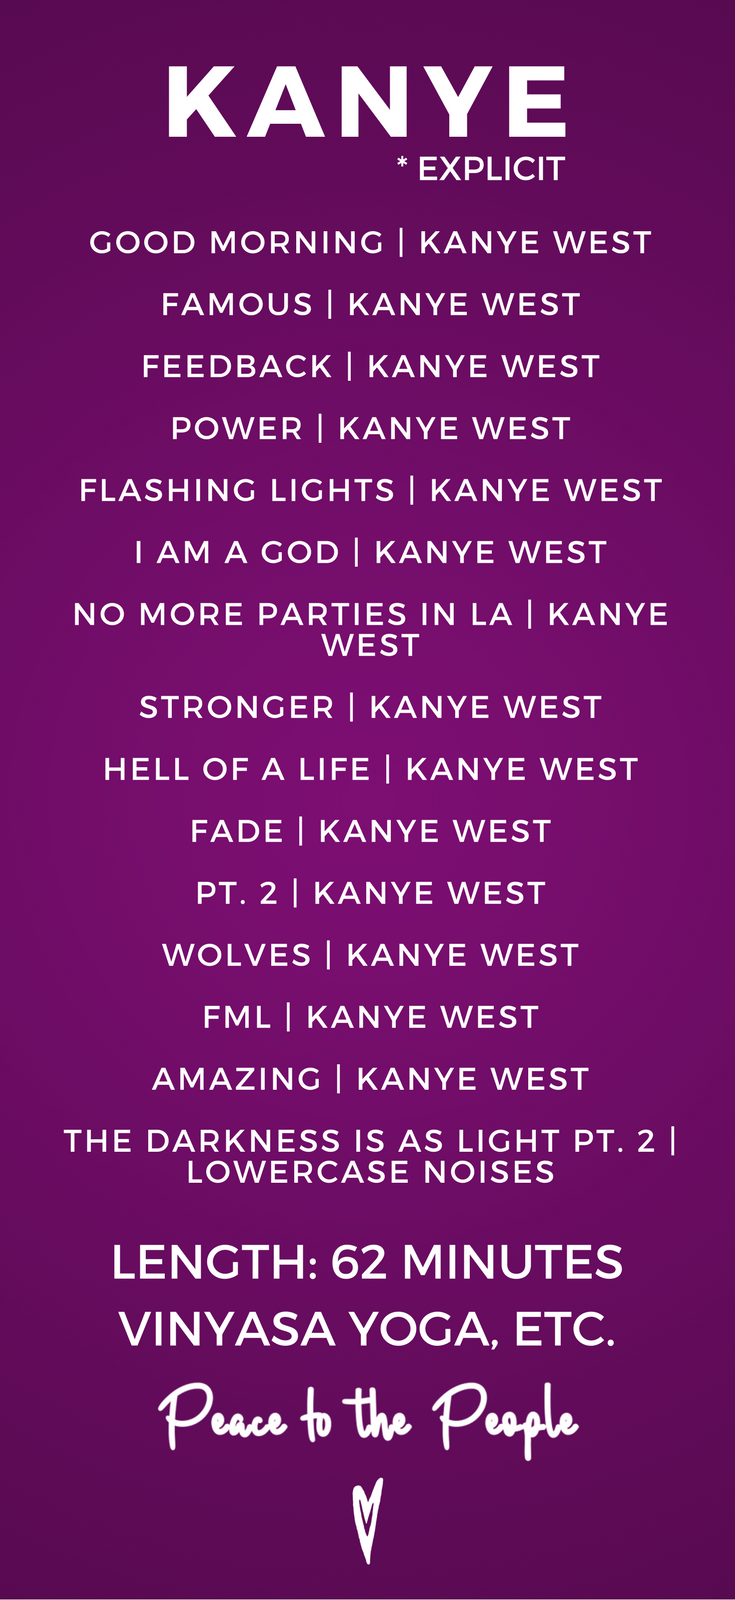 Kanye West Yoga Fitness Playlist Peace to the People